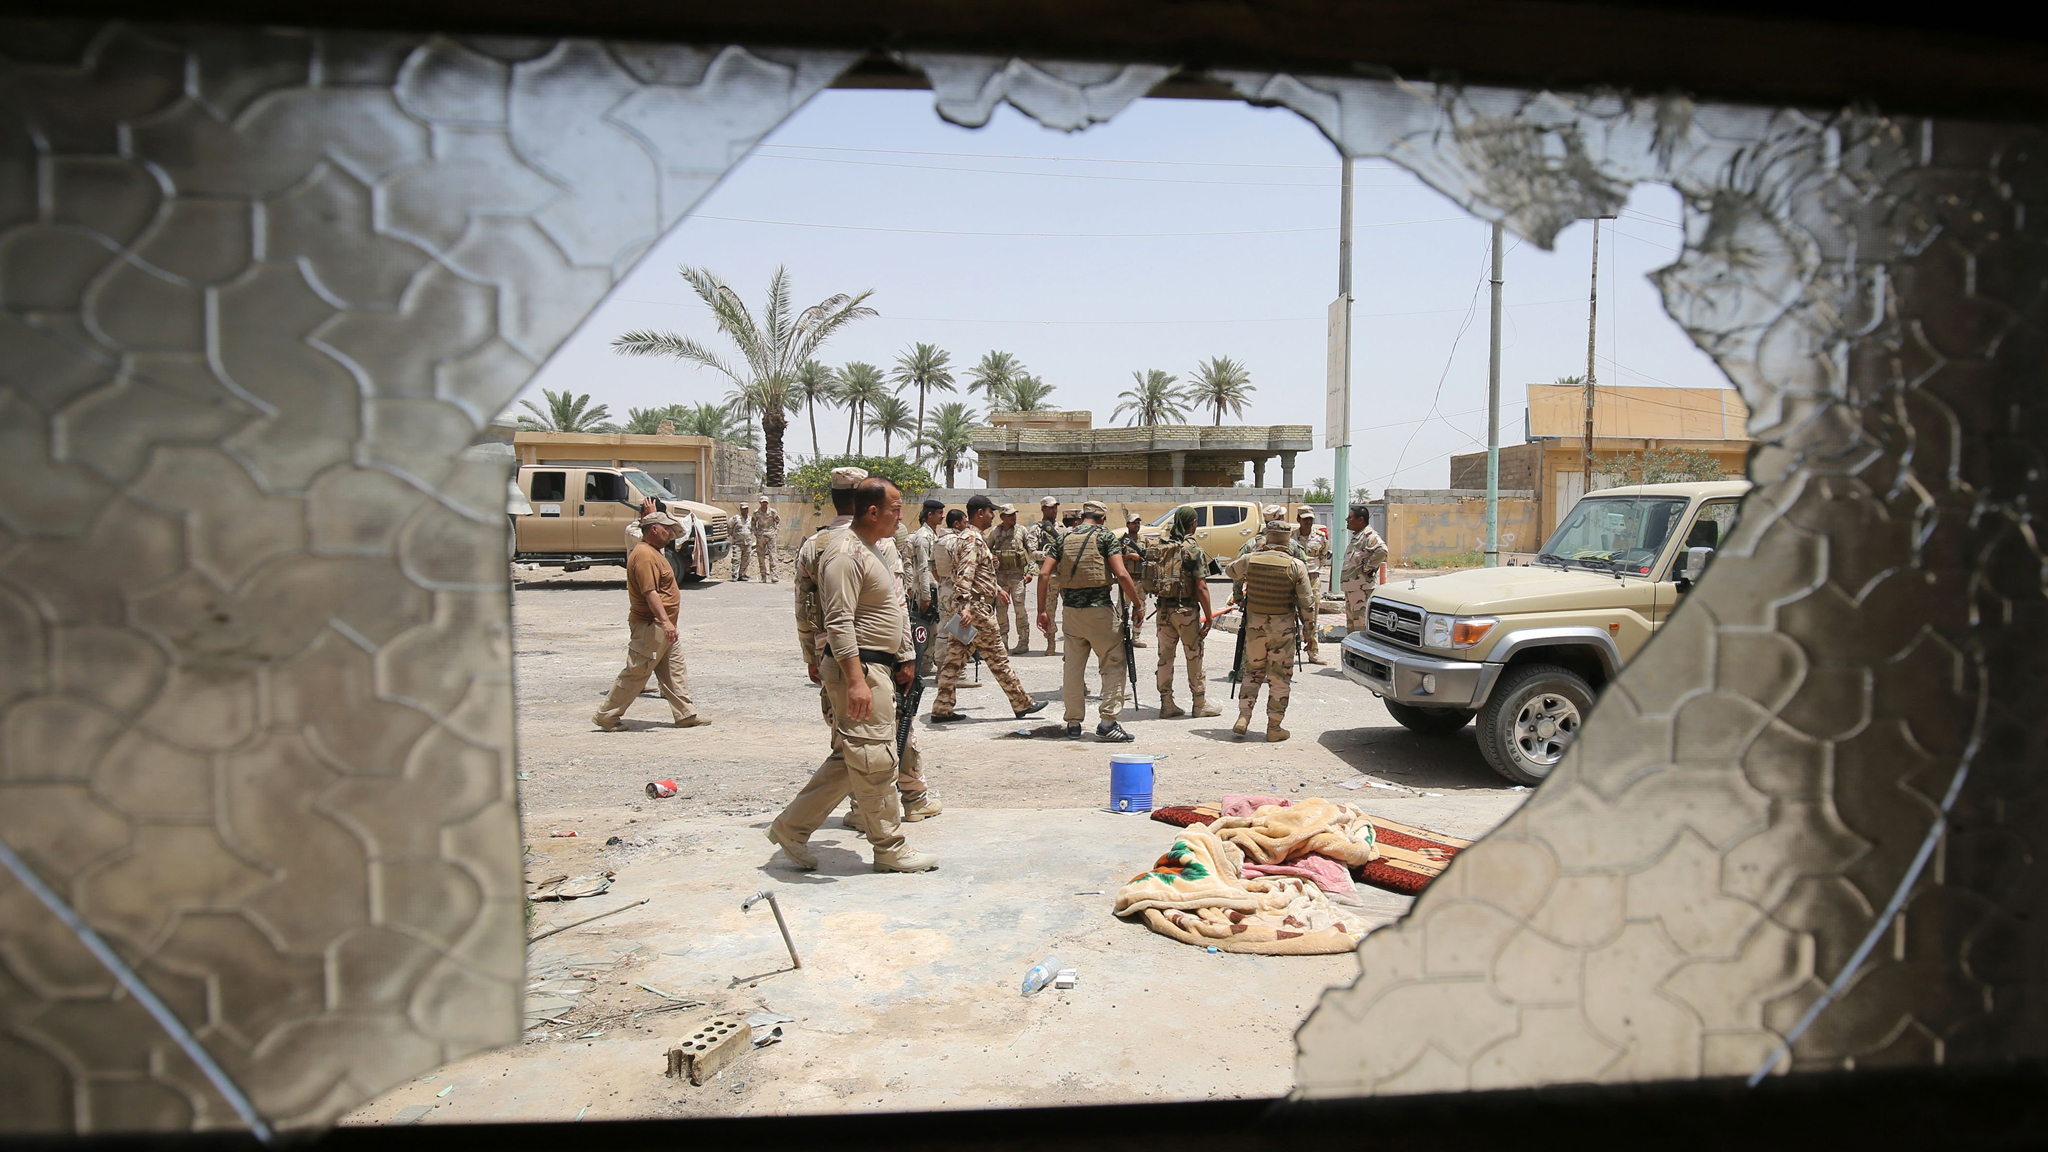 Iraqi soldiers patrol the streets of Saqlawiyah, north west of Fallujah, on June 8, 2016, during an operation to regain territory from the Islamic State (IS) group. Iraqi pro-government forces, made up of fighters from the army, the police and the Popular Mobilisation units, gained new ground from the Islamic State group in a key area west of the jihadist in Fallujah. Led by the country's counter-terrorism service, Iraqi forces and allied militias backed by air support from a US-led coalition began an operation on May 23 to wrest the city of Fallujah from IS.   / AFP PHOTO / AHMAD AL-RUBAYEAHMAD AL-RUBAYE/AFP/Getty Images